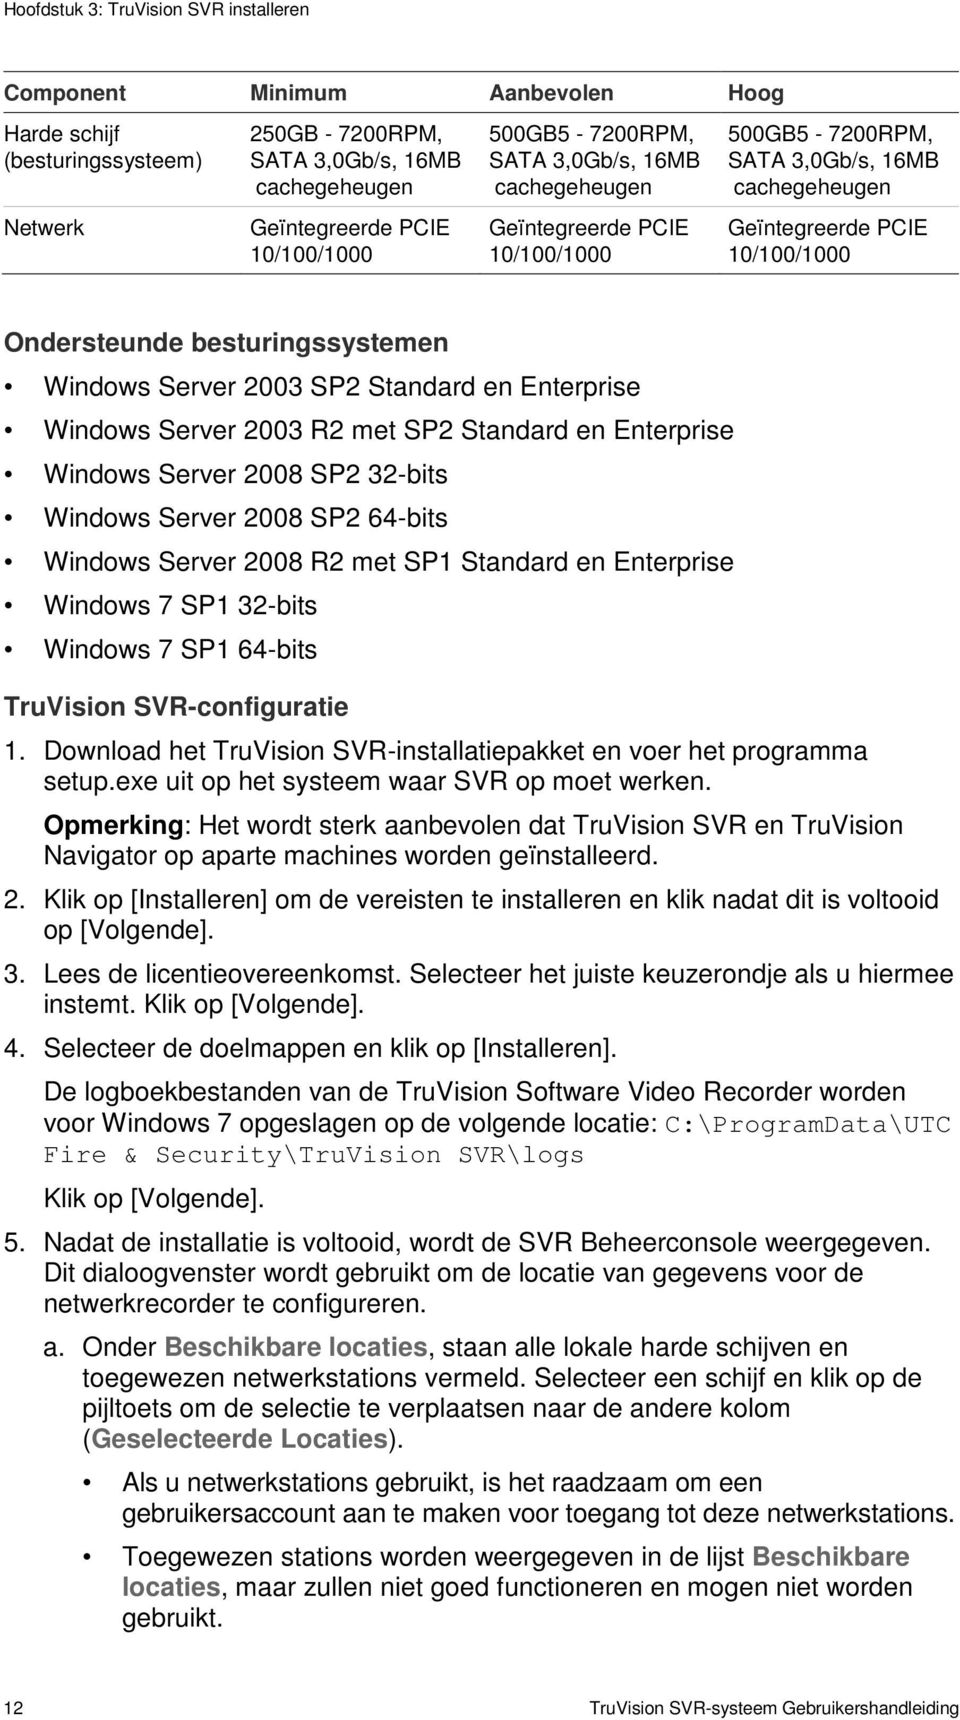 Windows Server 2003 SP2 Standard en Enterprise Windows Server 2003 R2 met SP2 Standard en Enterprise Windows Server 2008 SP2 32-bits Windows Server 2008 SP2 64-bits Windows Server 2008 R2 met SP1